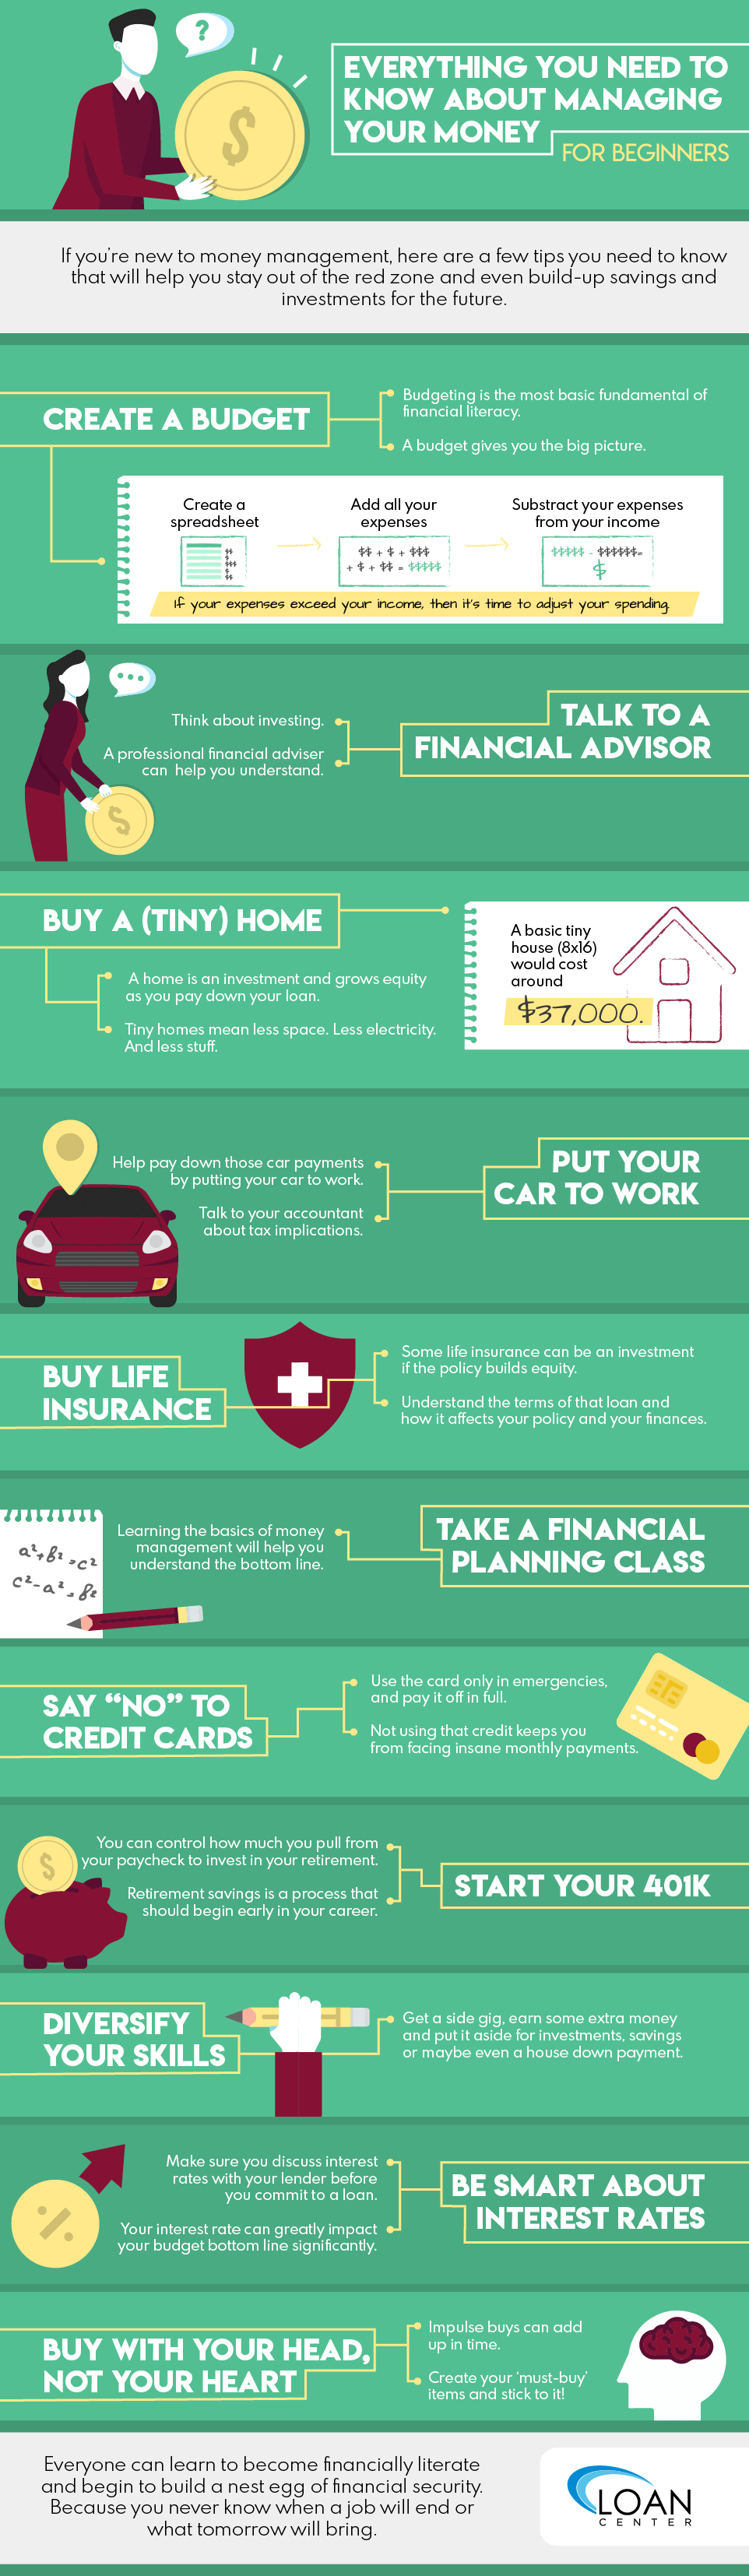 Everything You Need to Know About Managing Your Money Infographic